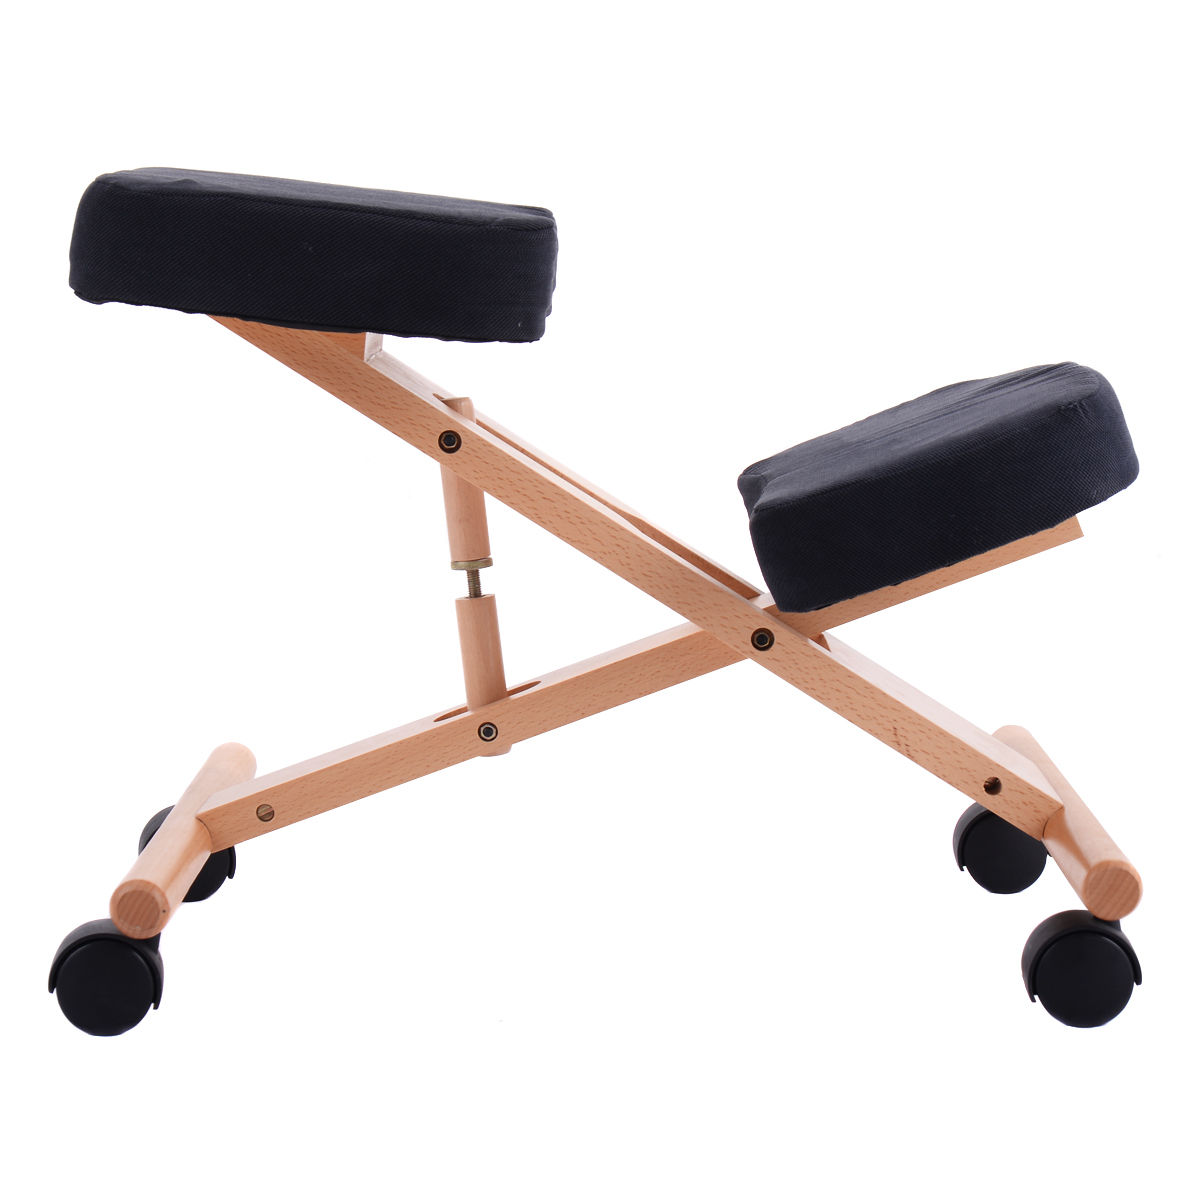 costway ergonomic kneeling chair wooden adjustable mobile padded seat and knee rest image 5 of 7